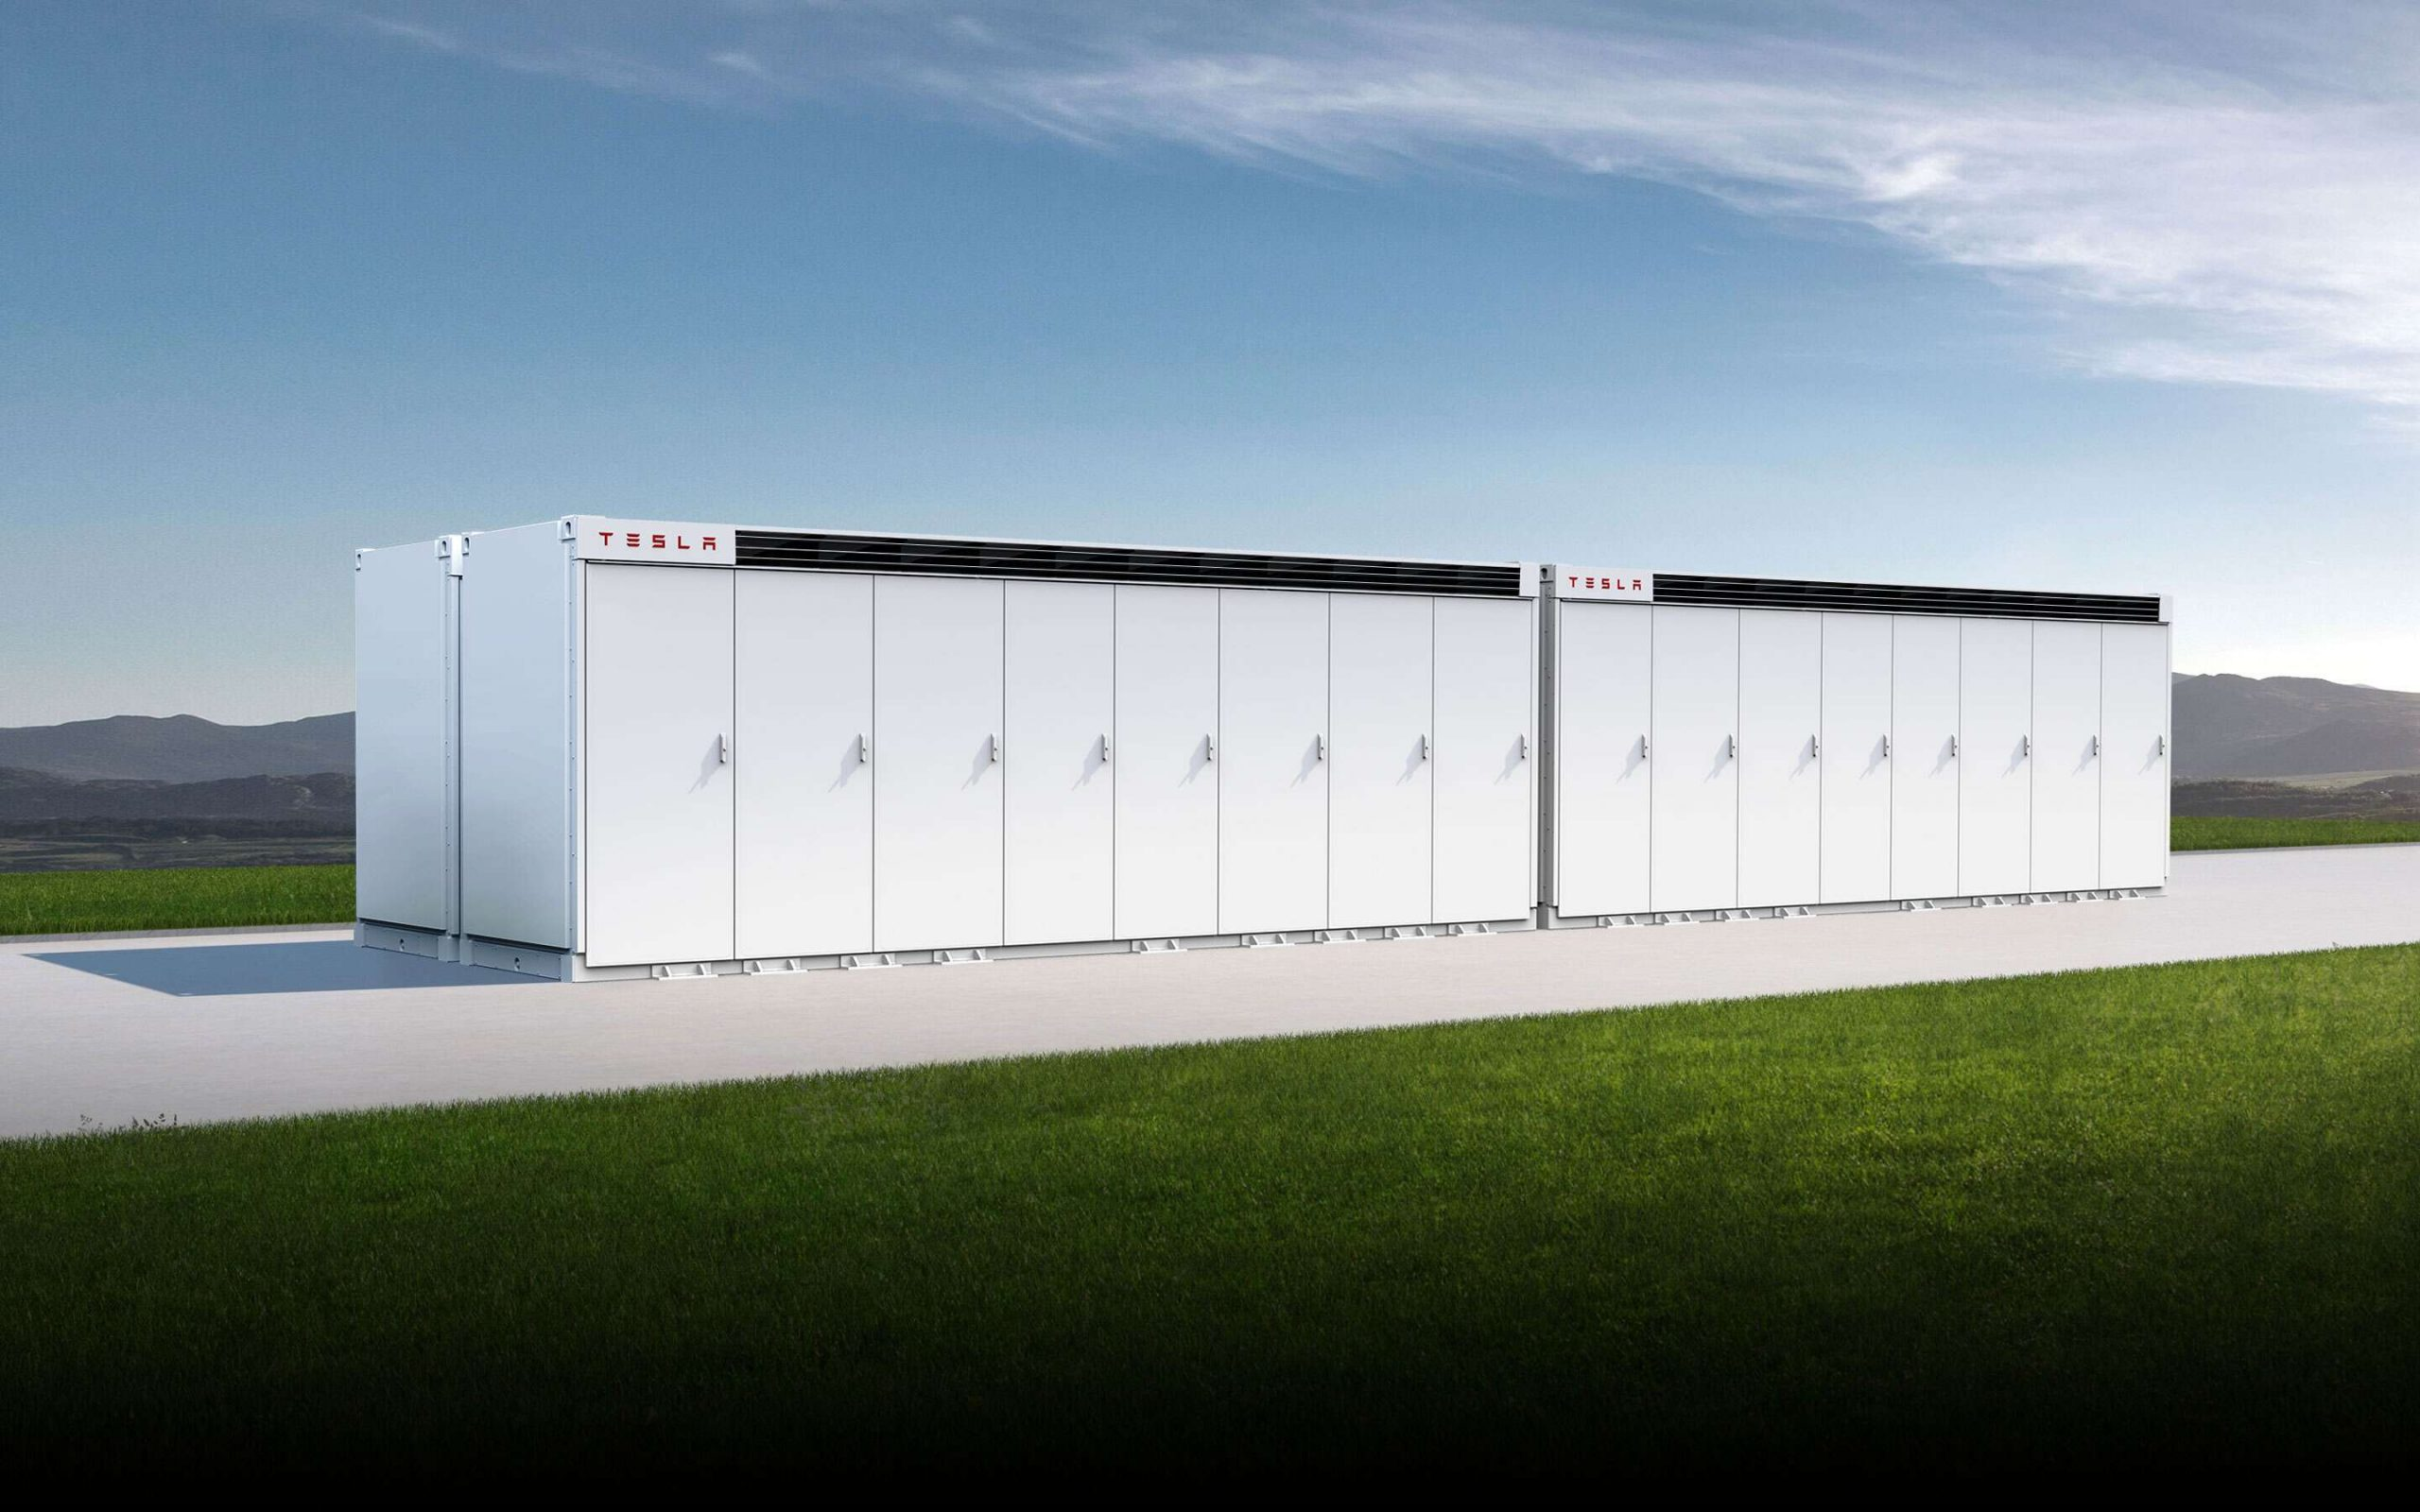 Apple to use Tesla's 'Megapack' batteries at its new California solar farm - Report